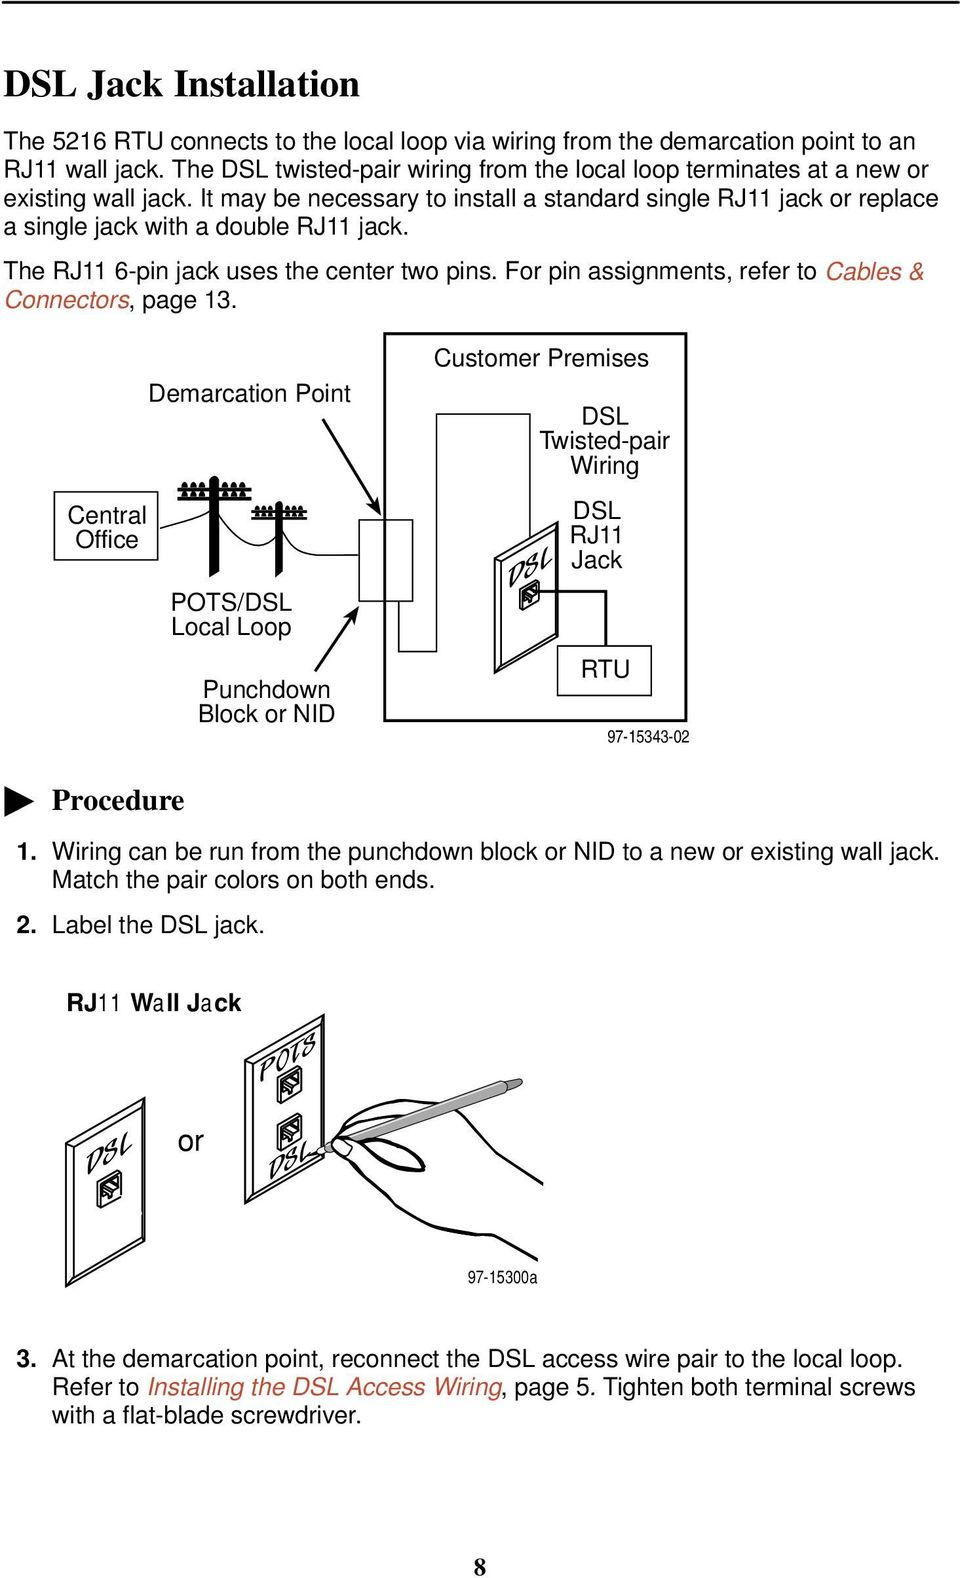 Hotwire 5216 Remote Termination Unit Rtu Customer Premises Rj11 Punch Down Block Wiring The 6 Pin Jack Uses Center Two Pins For Assignments